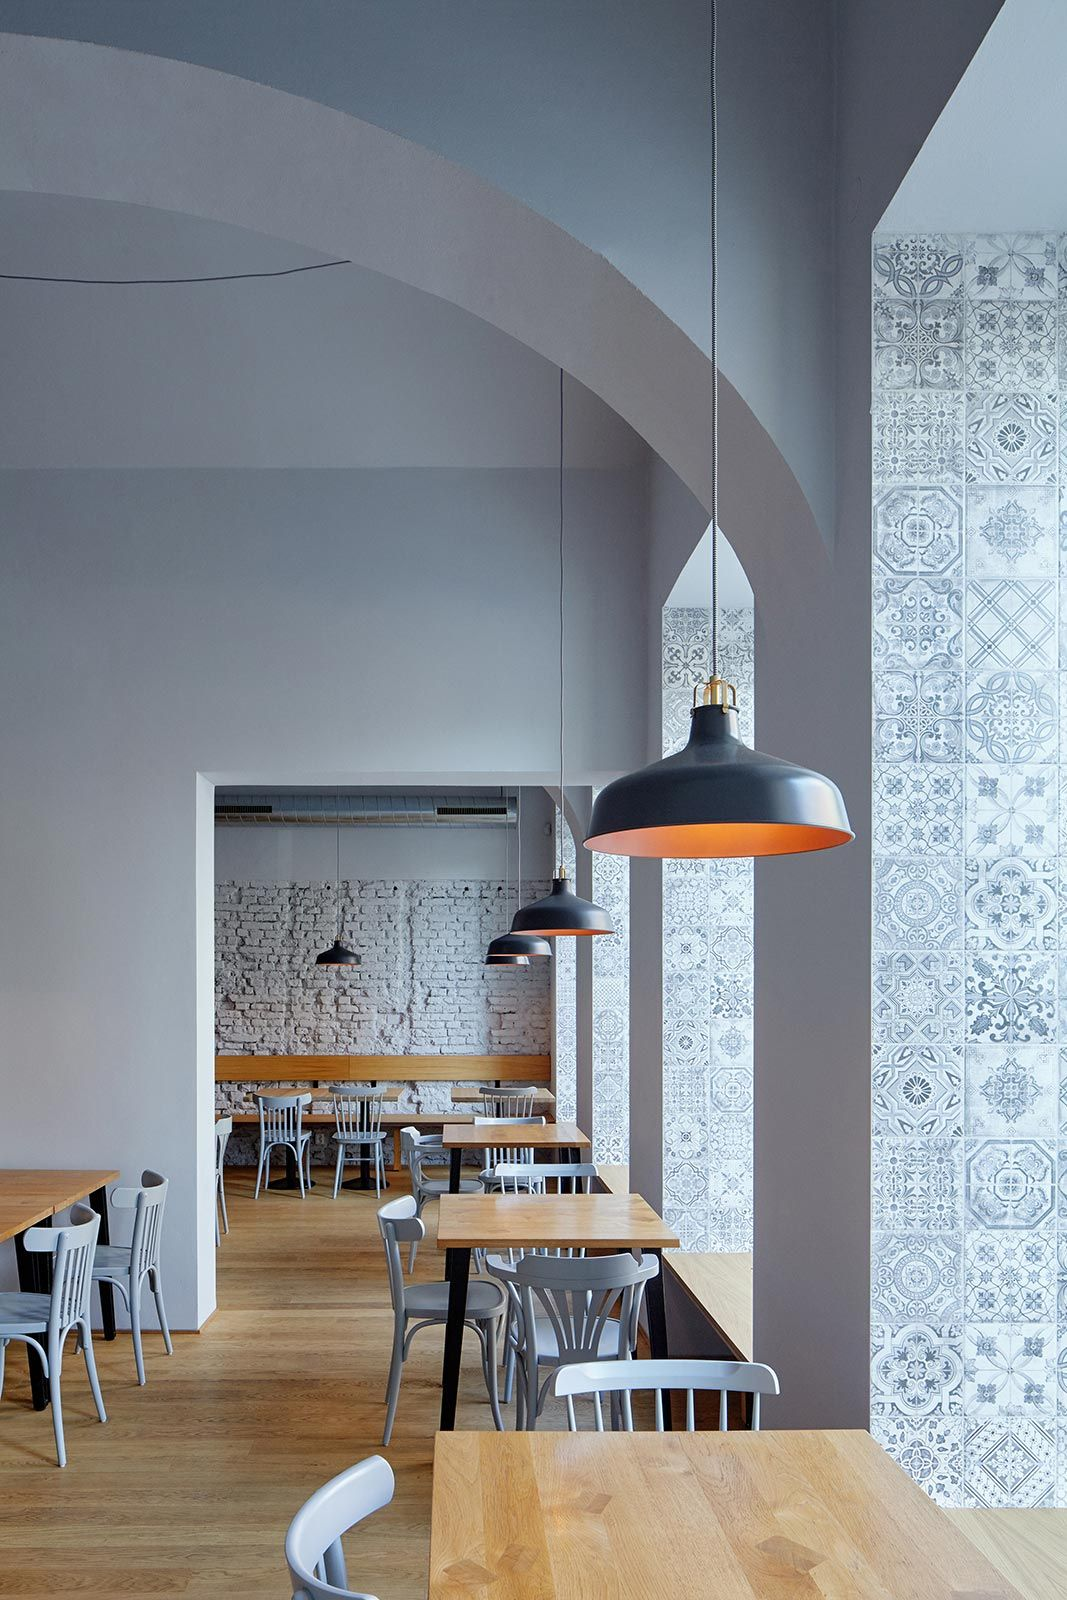 In a growing prague district of karlín which was affected by the hundred year flooding in 2002 this event is reflected in the interior of the bistro